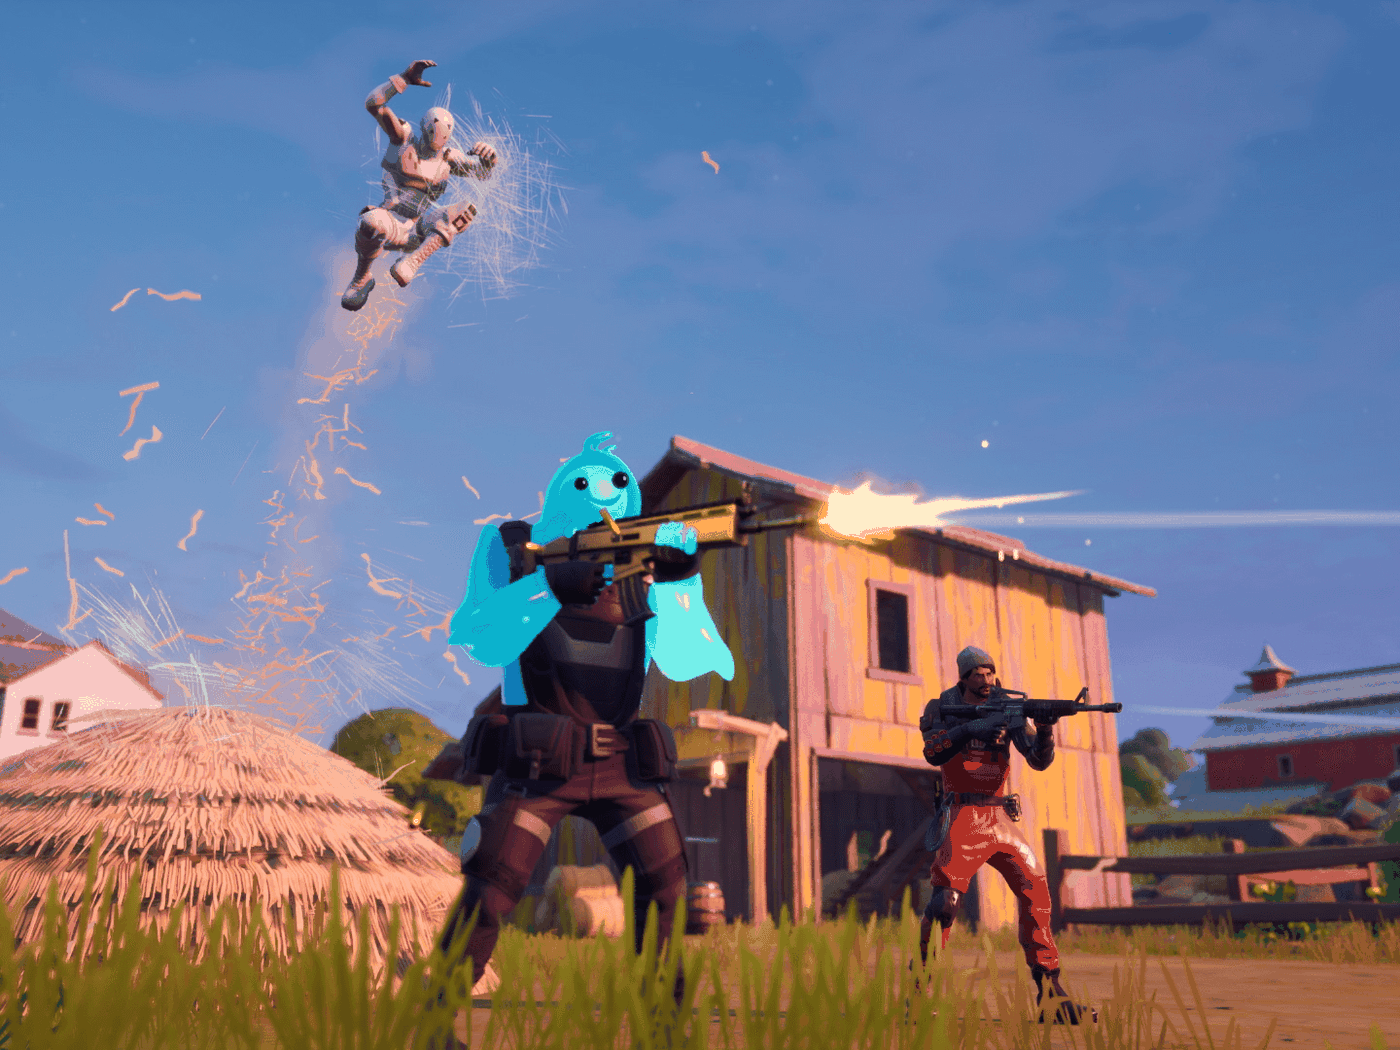 Fortnite S Black Hole Has Closed And Chapter 2 Is Finally Here The Verge